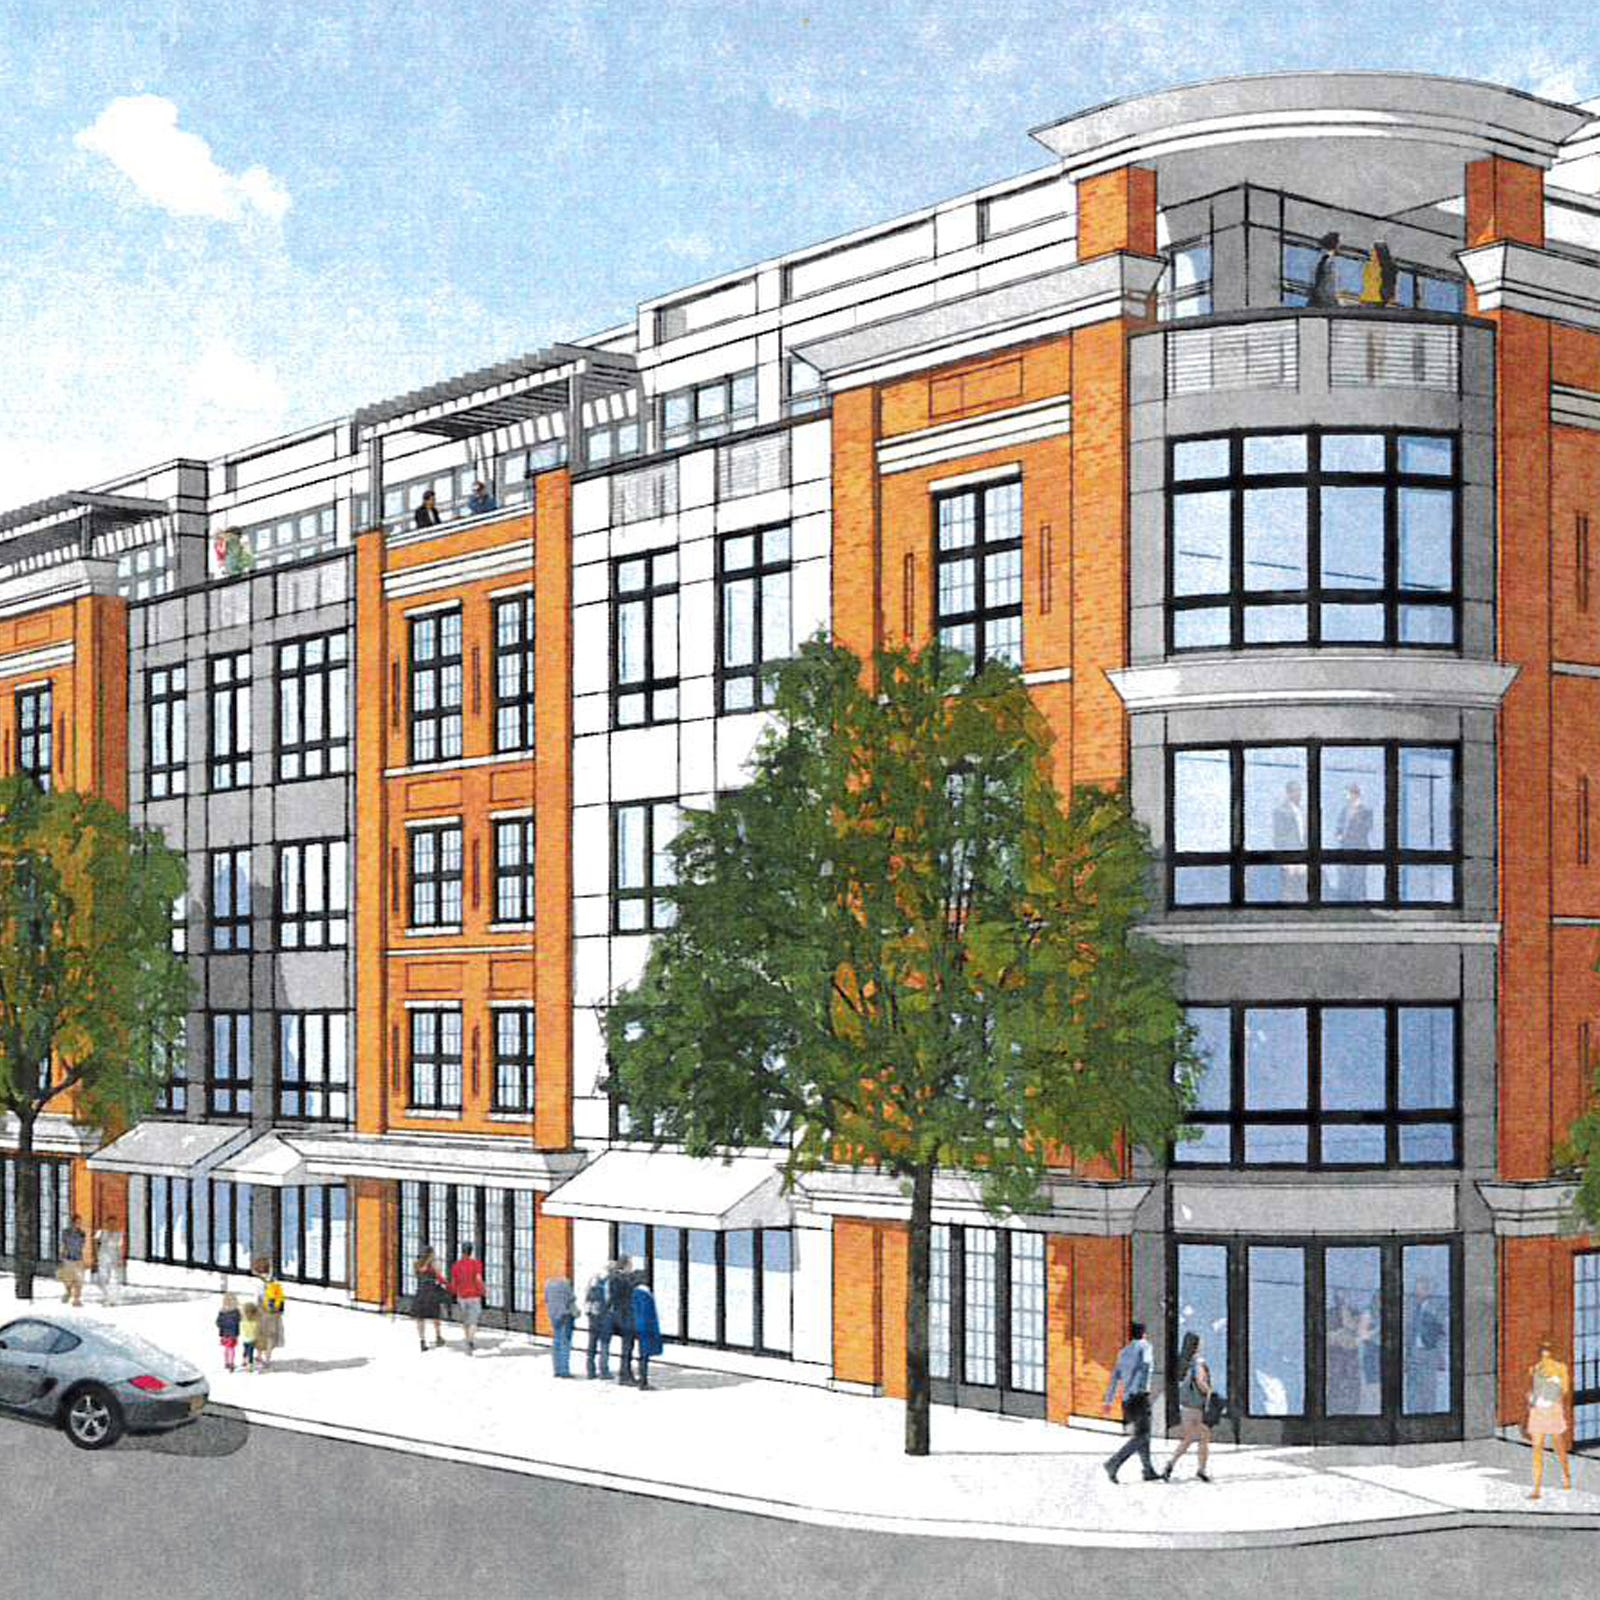 Developers drop plans for mixed-use development in  Tarrytown after community outcry